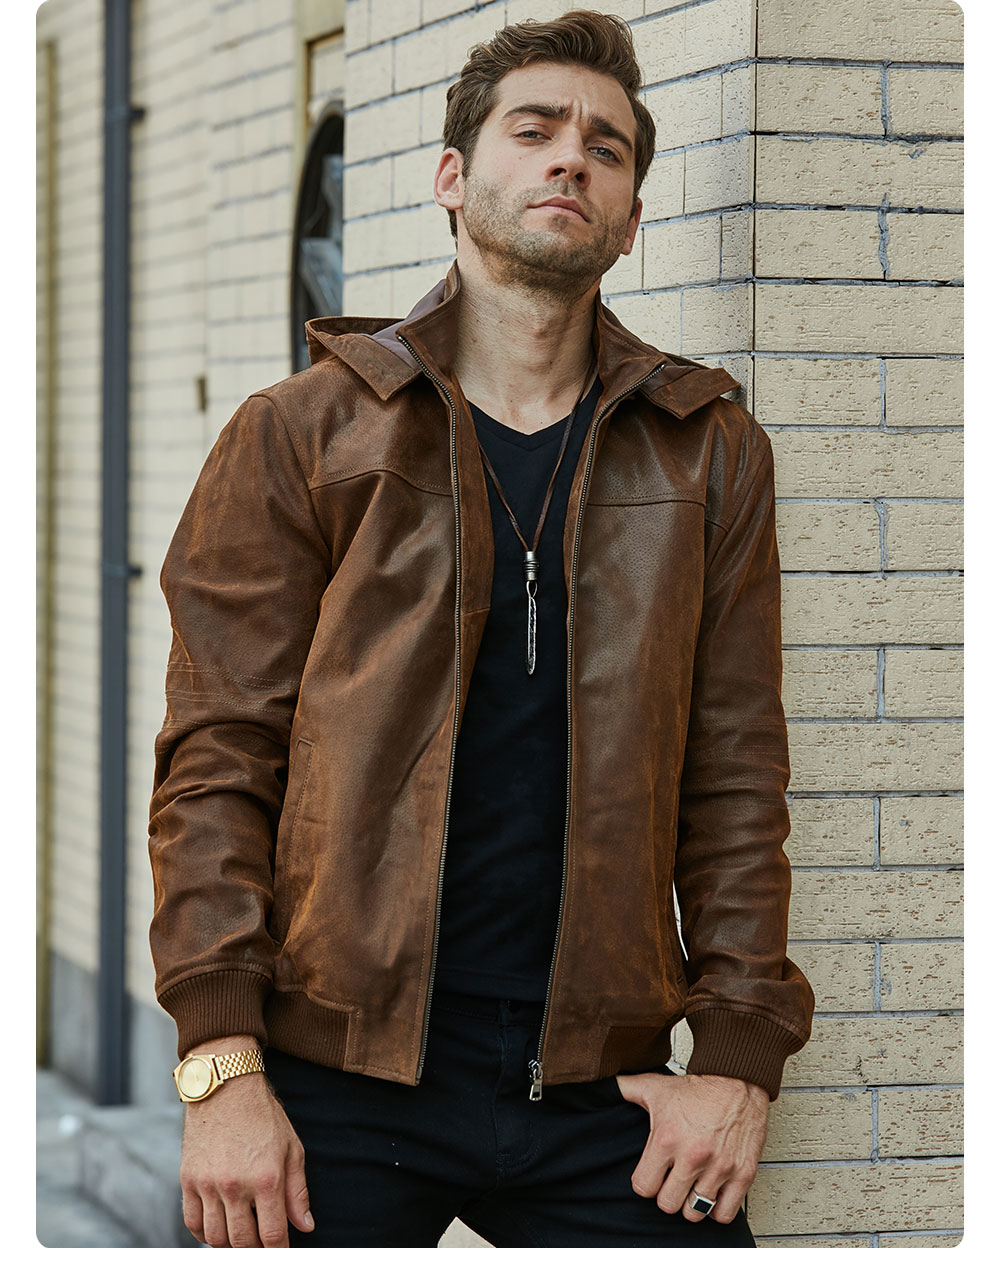 H1f1fd6cf7036492c8796be7c3e4dee7a3 New Men's Winter Jacket Made Of Genuine Pigskin Leather With A Hood, Pigskin Motorcycle Jacket, Natural Leather Jacket